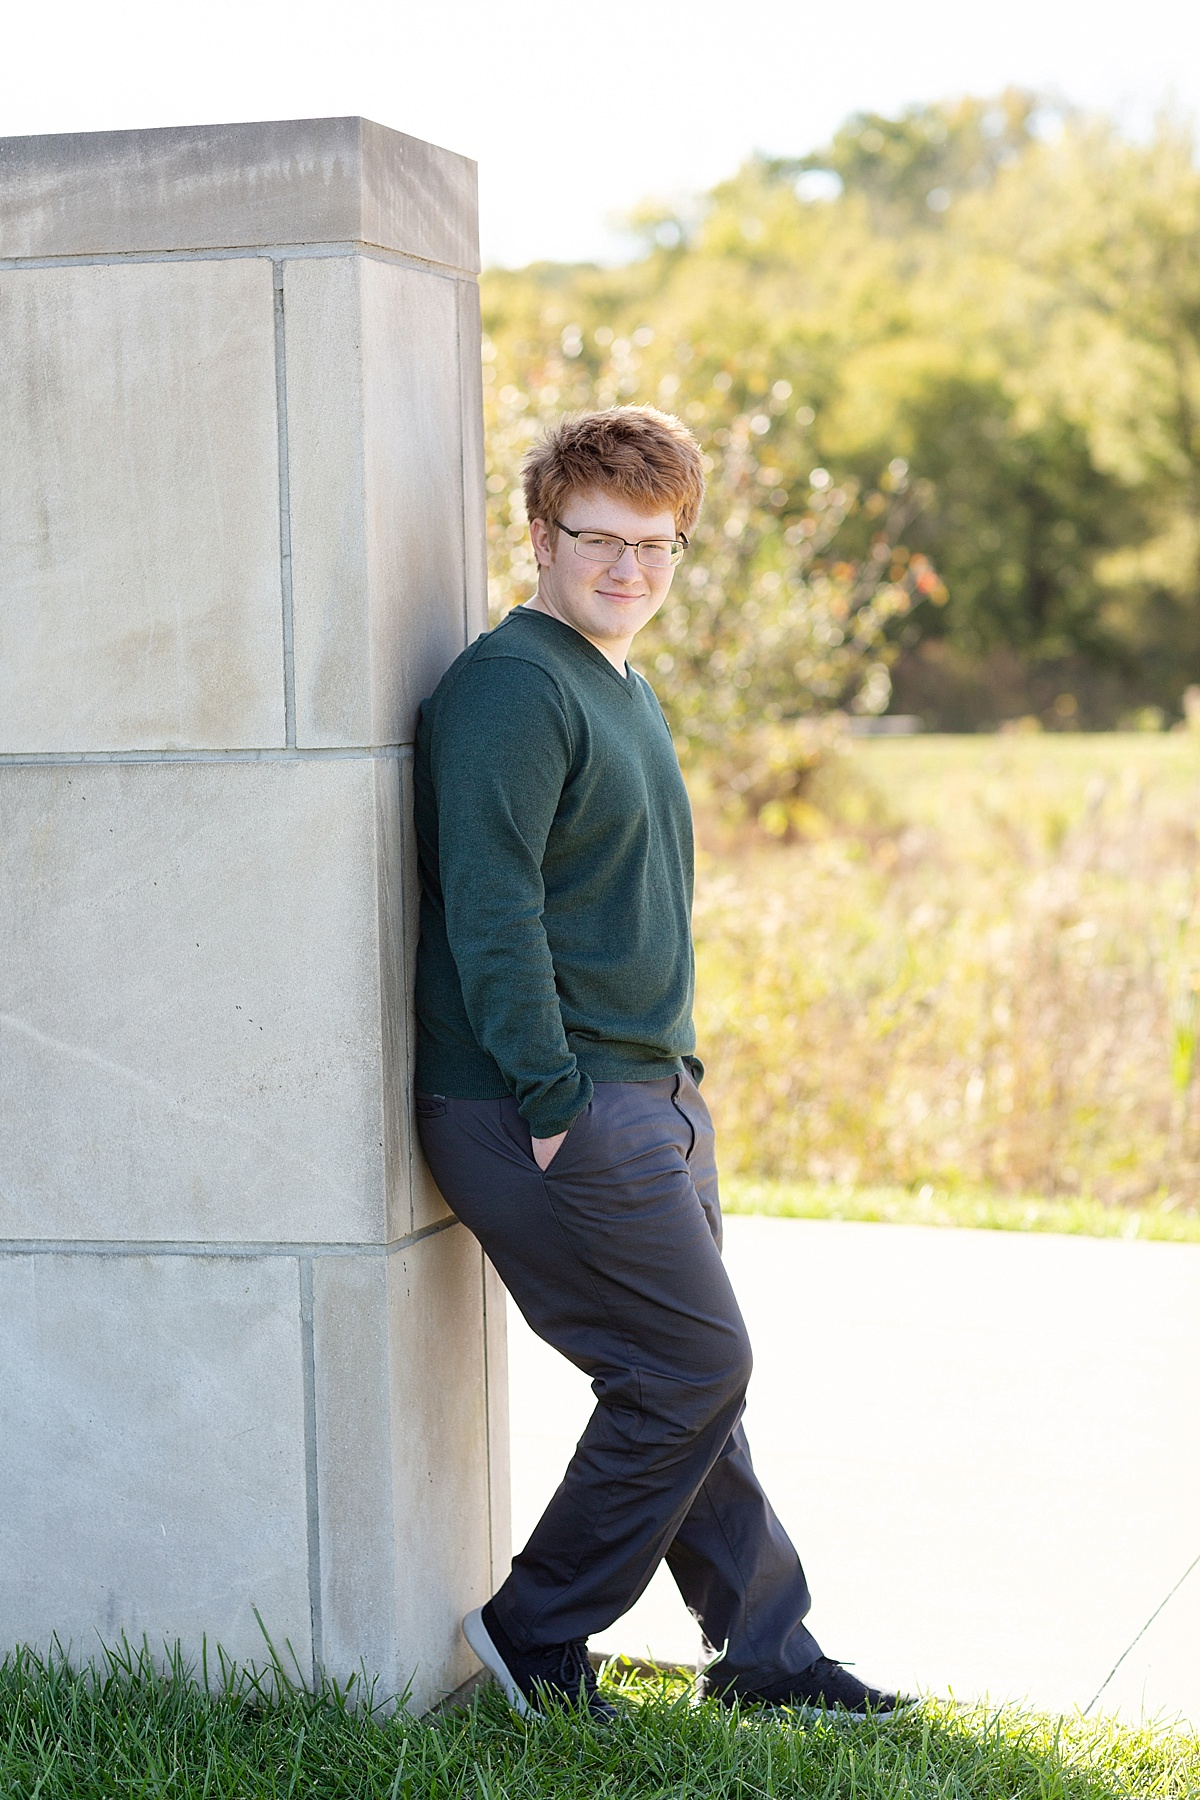 louisville-senior-photos-007.JPG